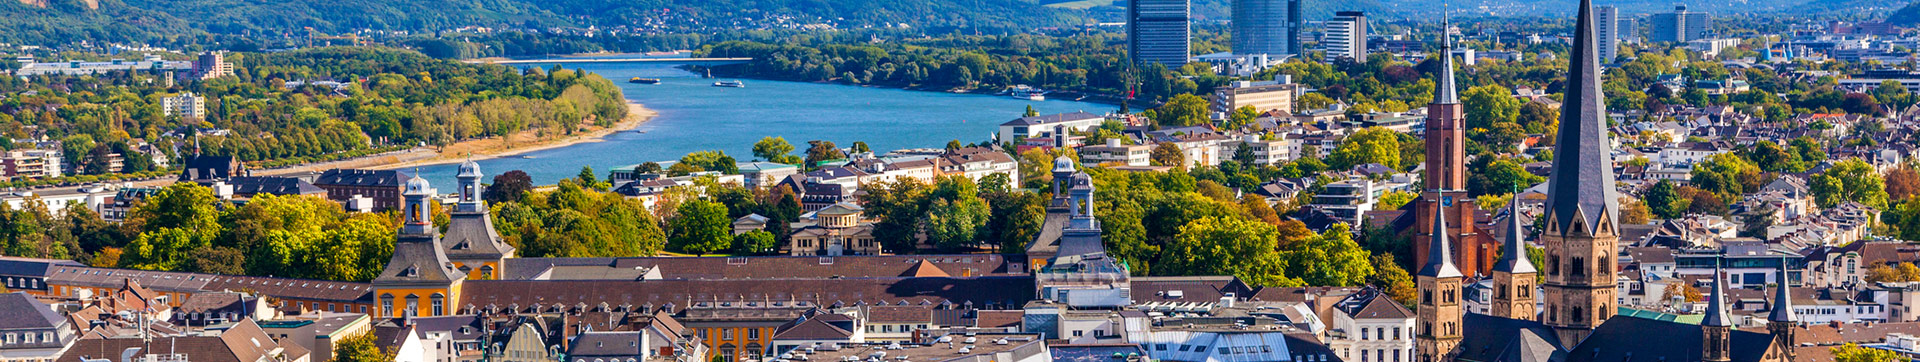 View of the city of Bonn on the Rhine